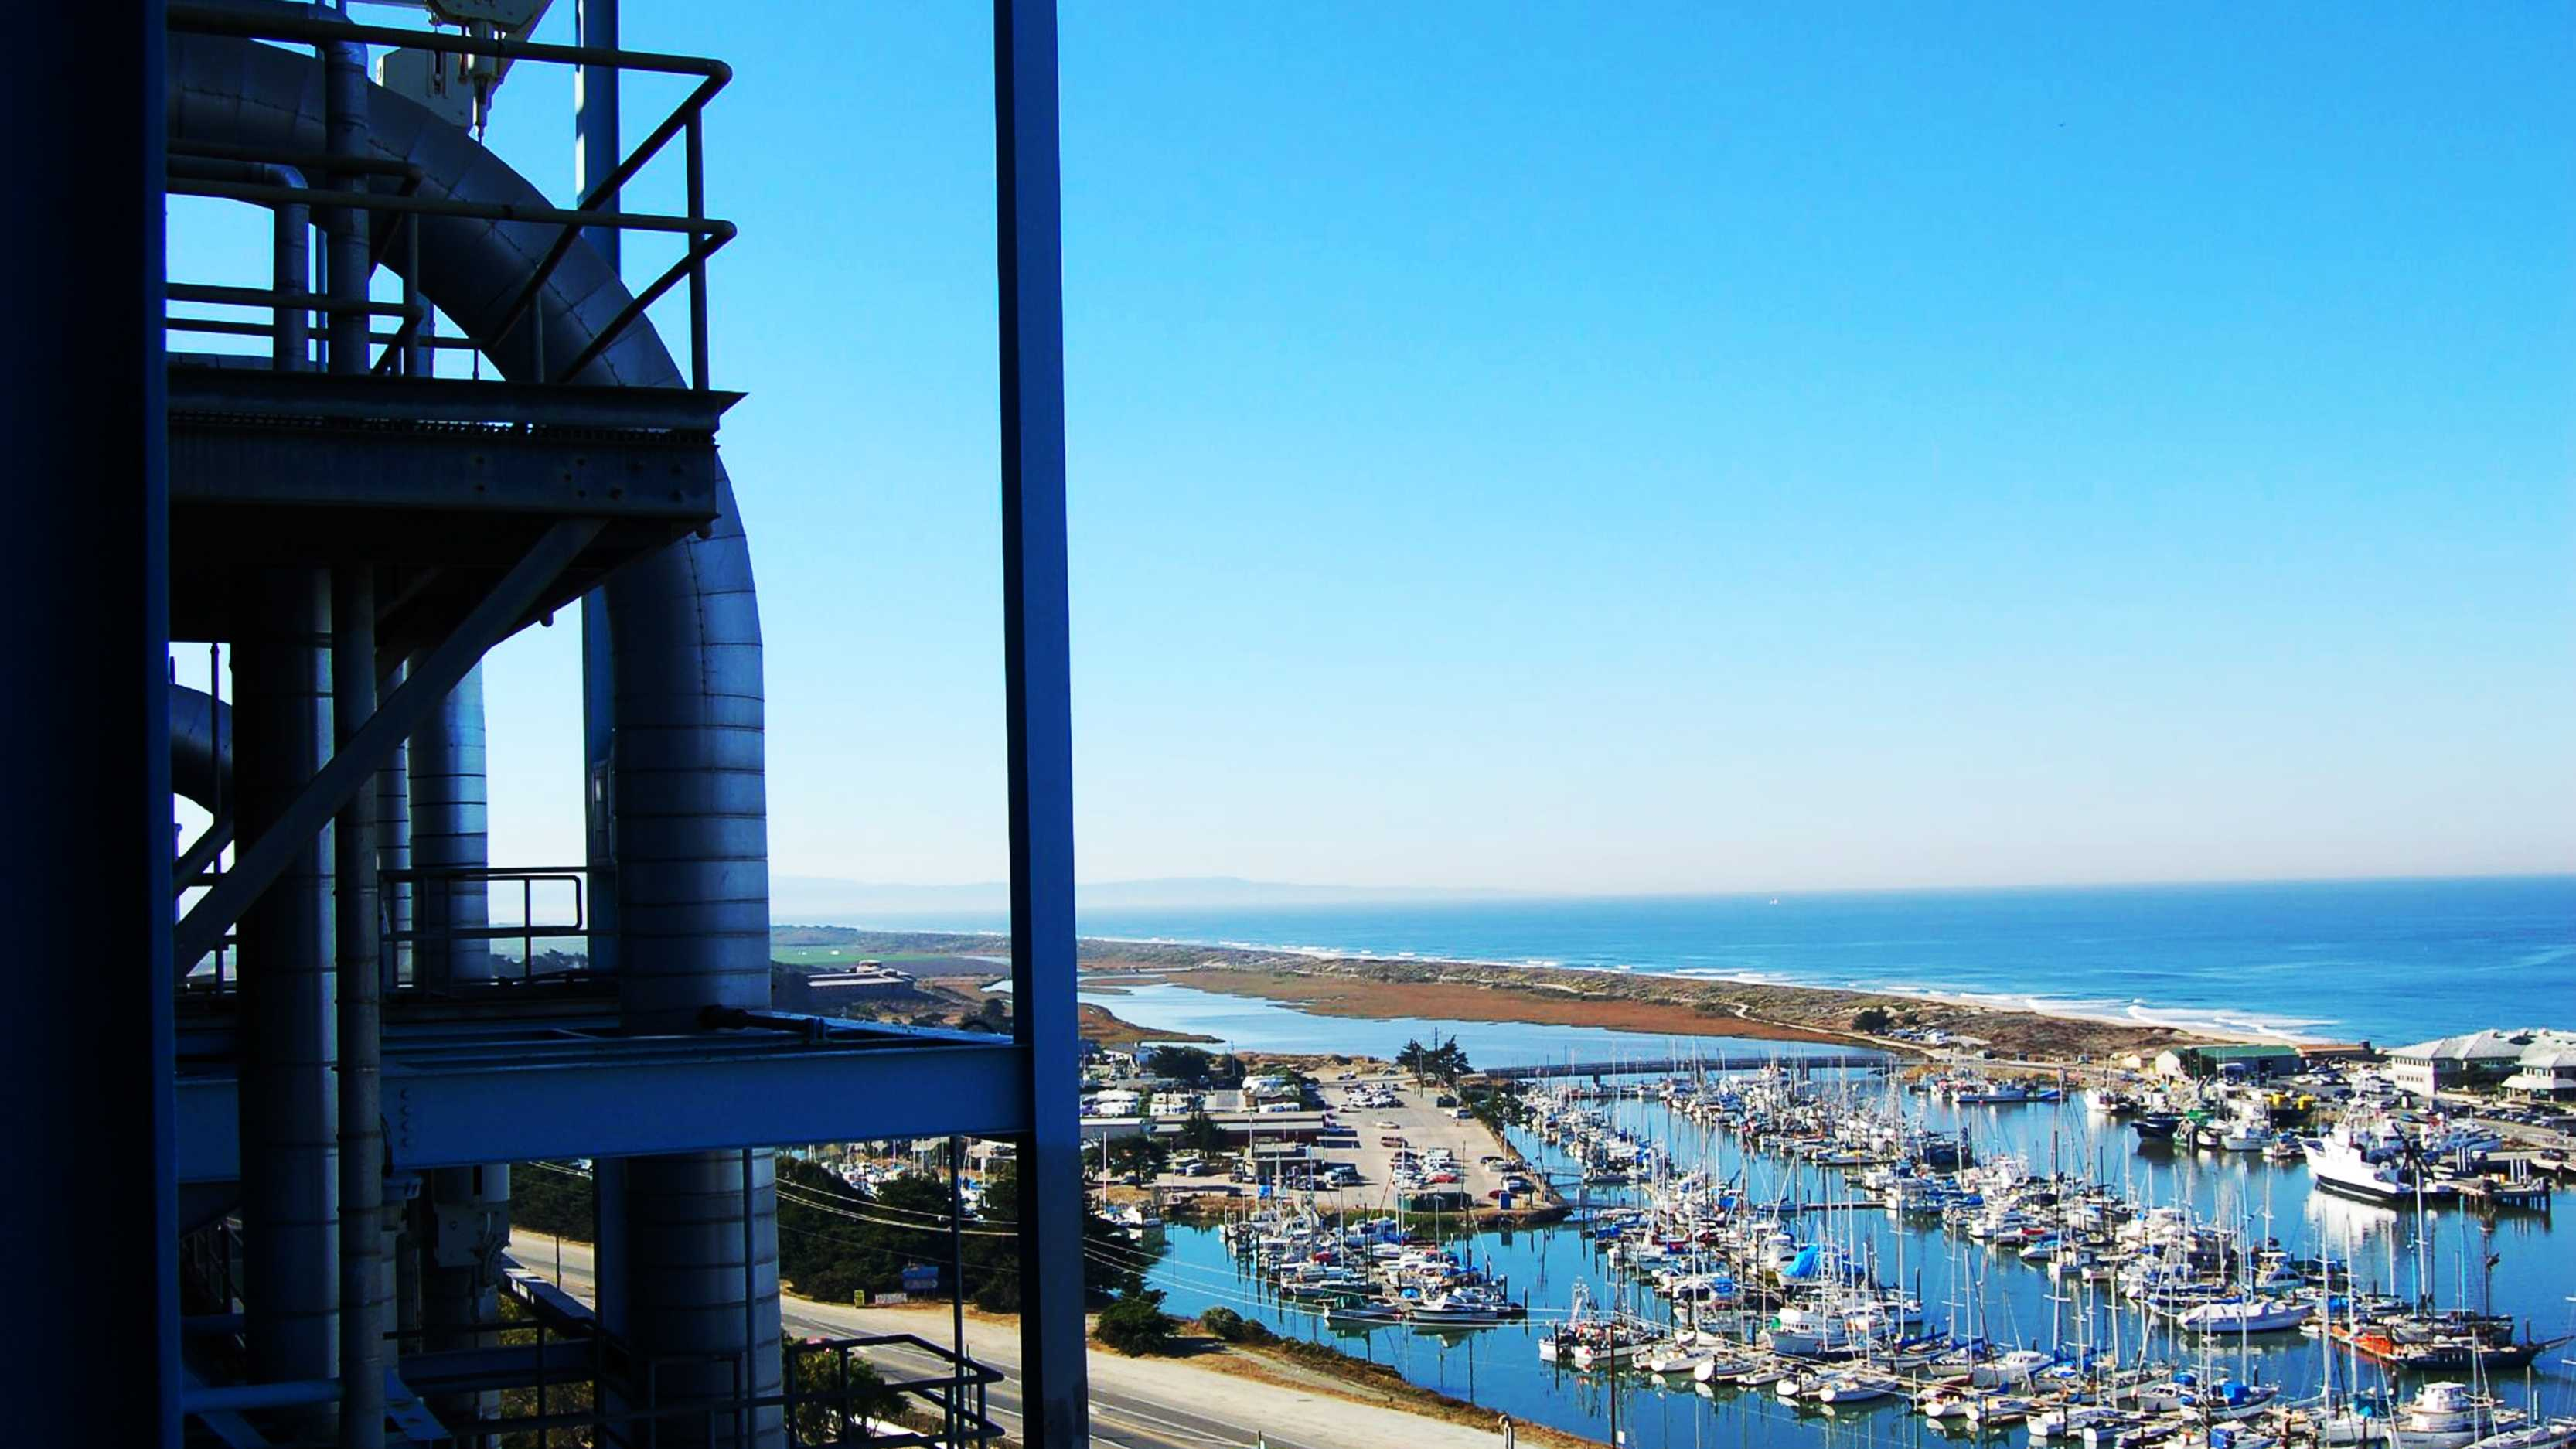 The tiny fishing town of Moss Landing is seen from a perch on the Moss Landing Power Plant.